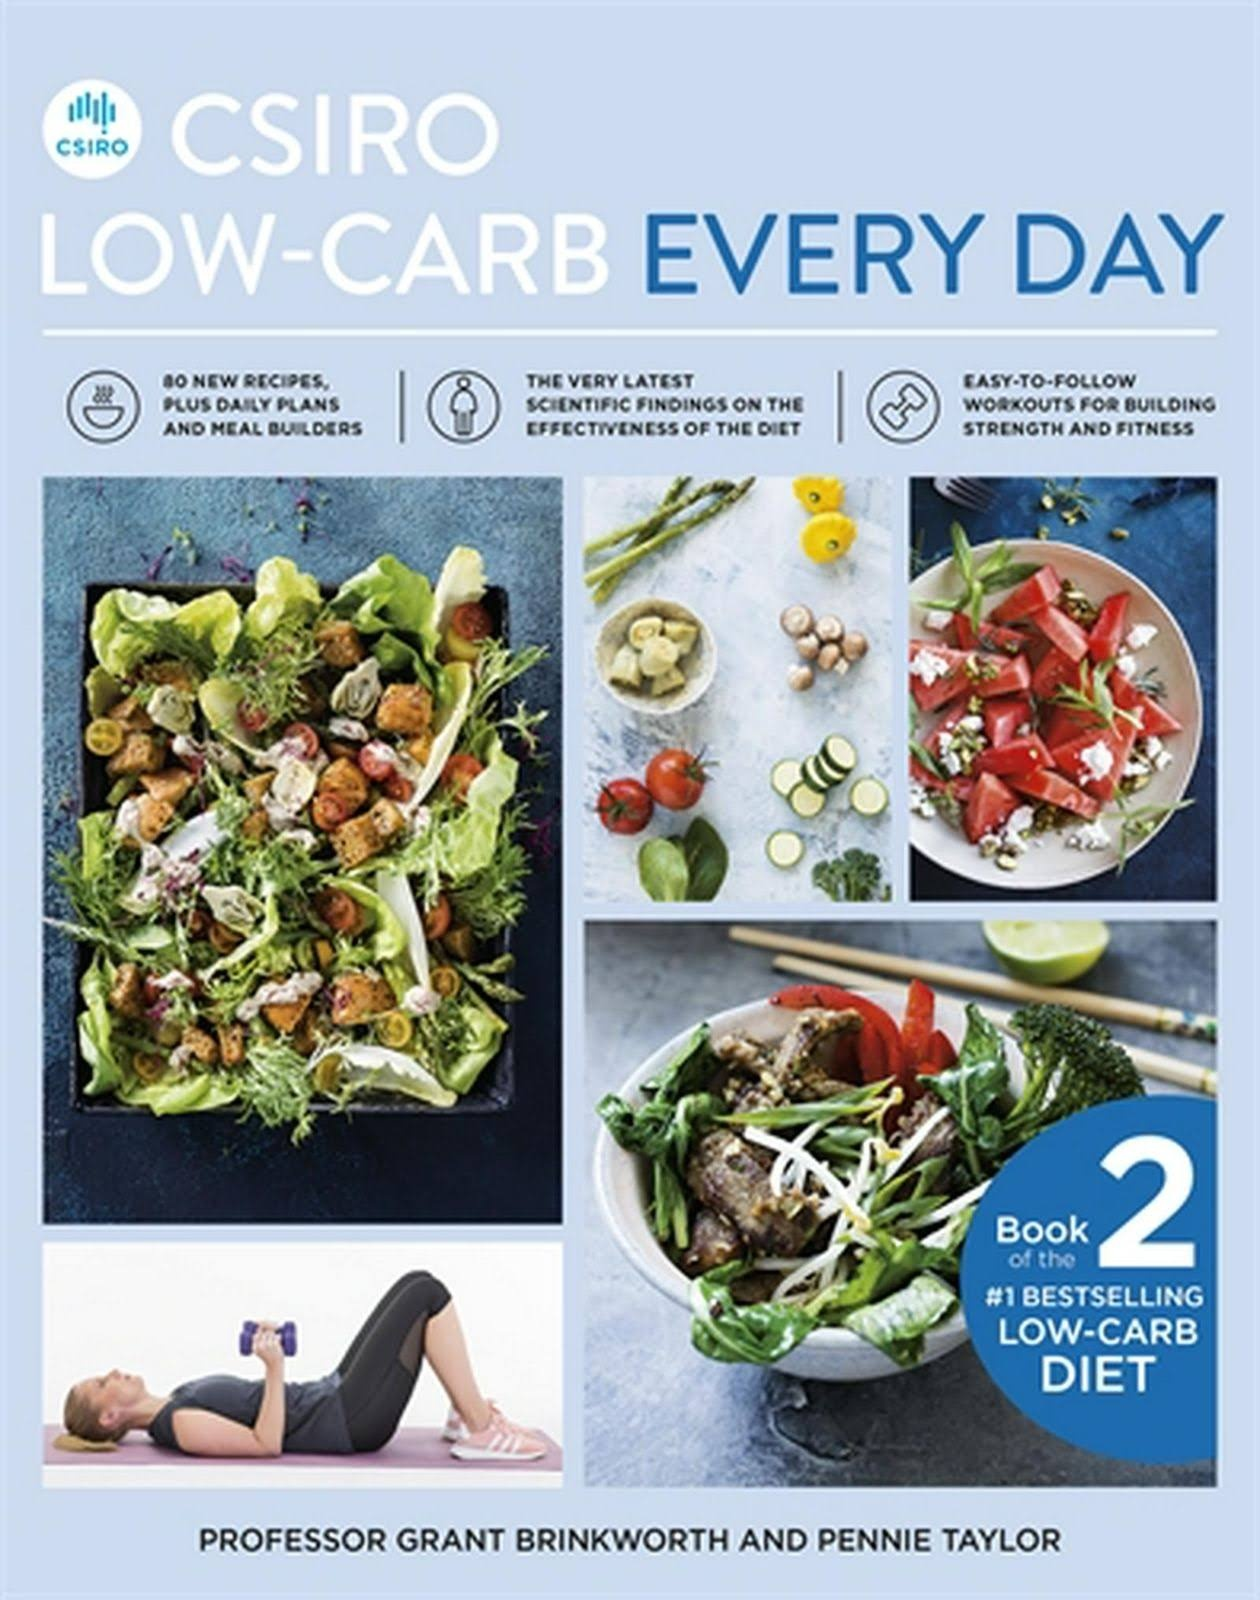 CSIRO Low Carb Every Day by Grant Brinkworth,Pennie Taylor, ISBN: 9781760554545